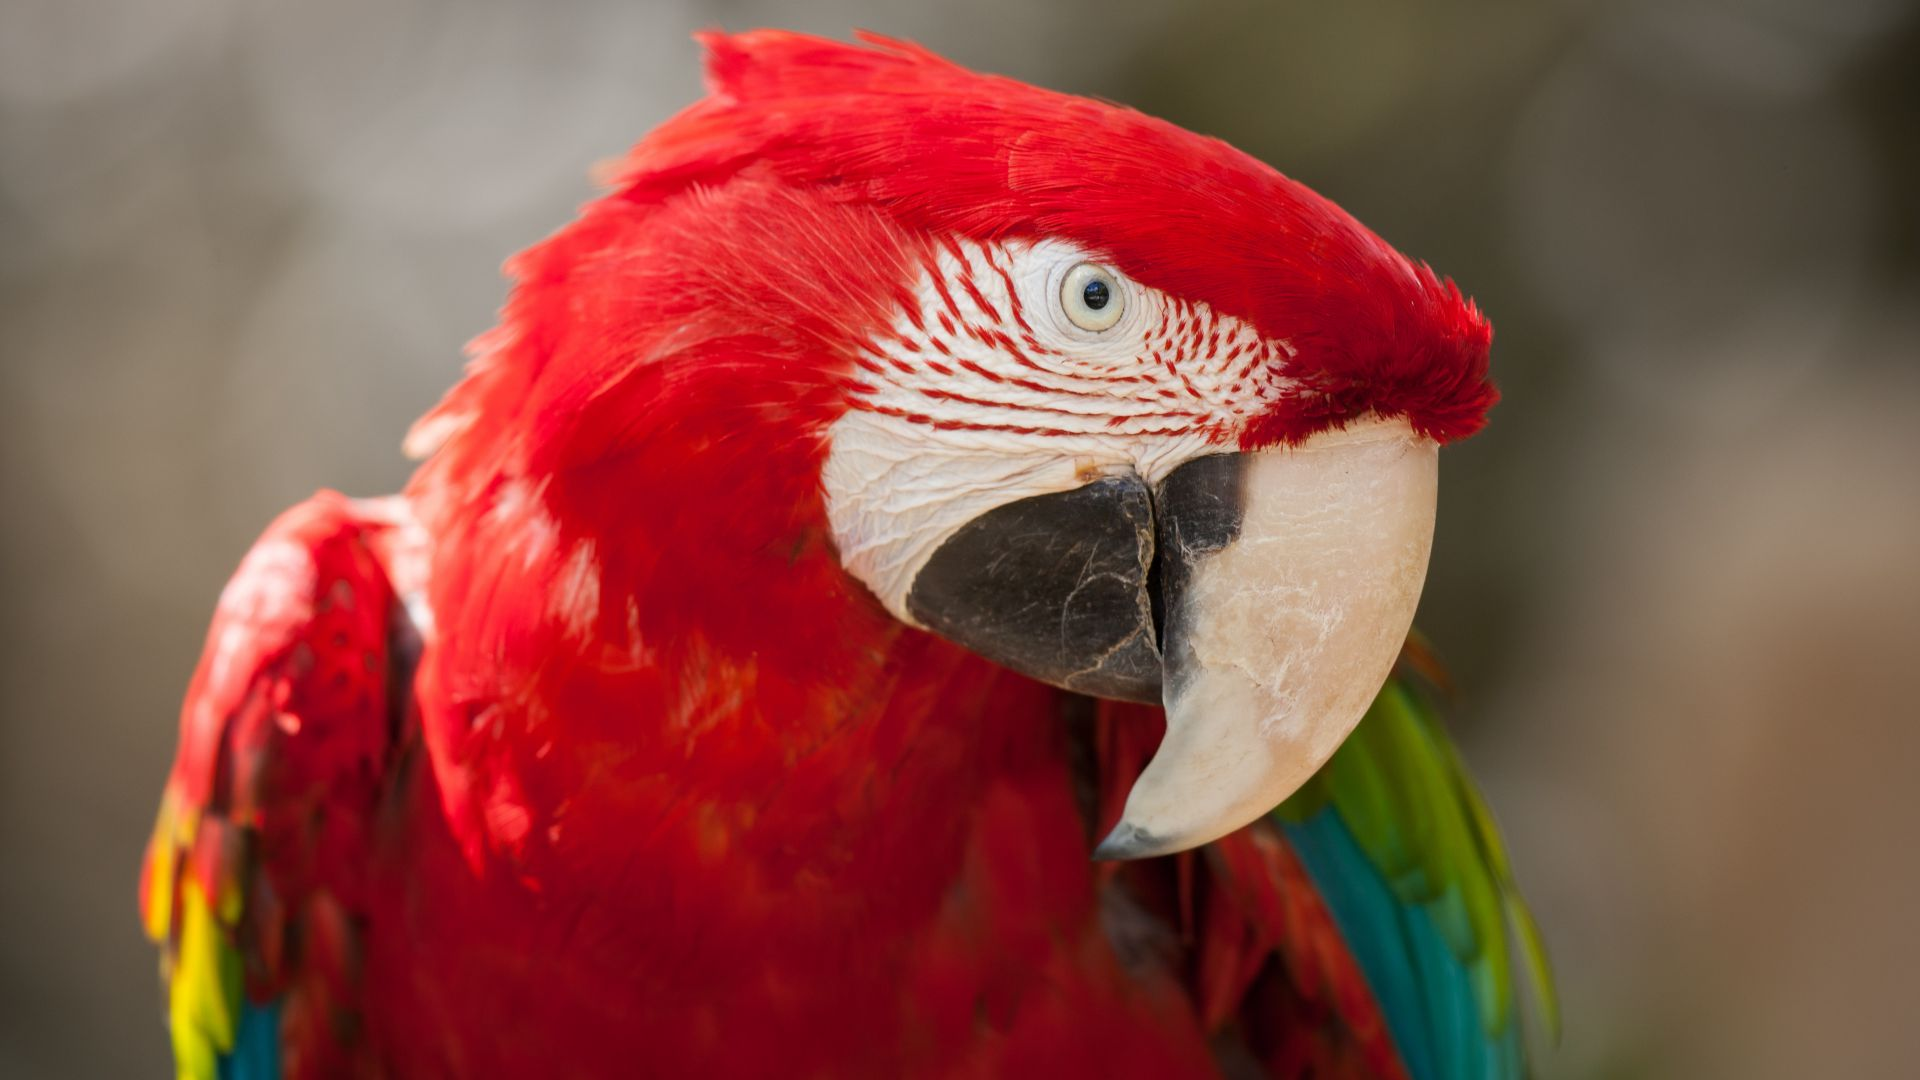 Macaw, parrot, cute animals (horizontal)